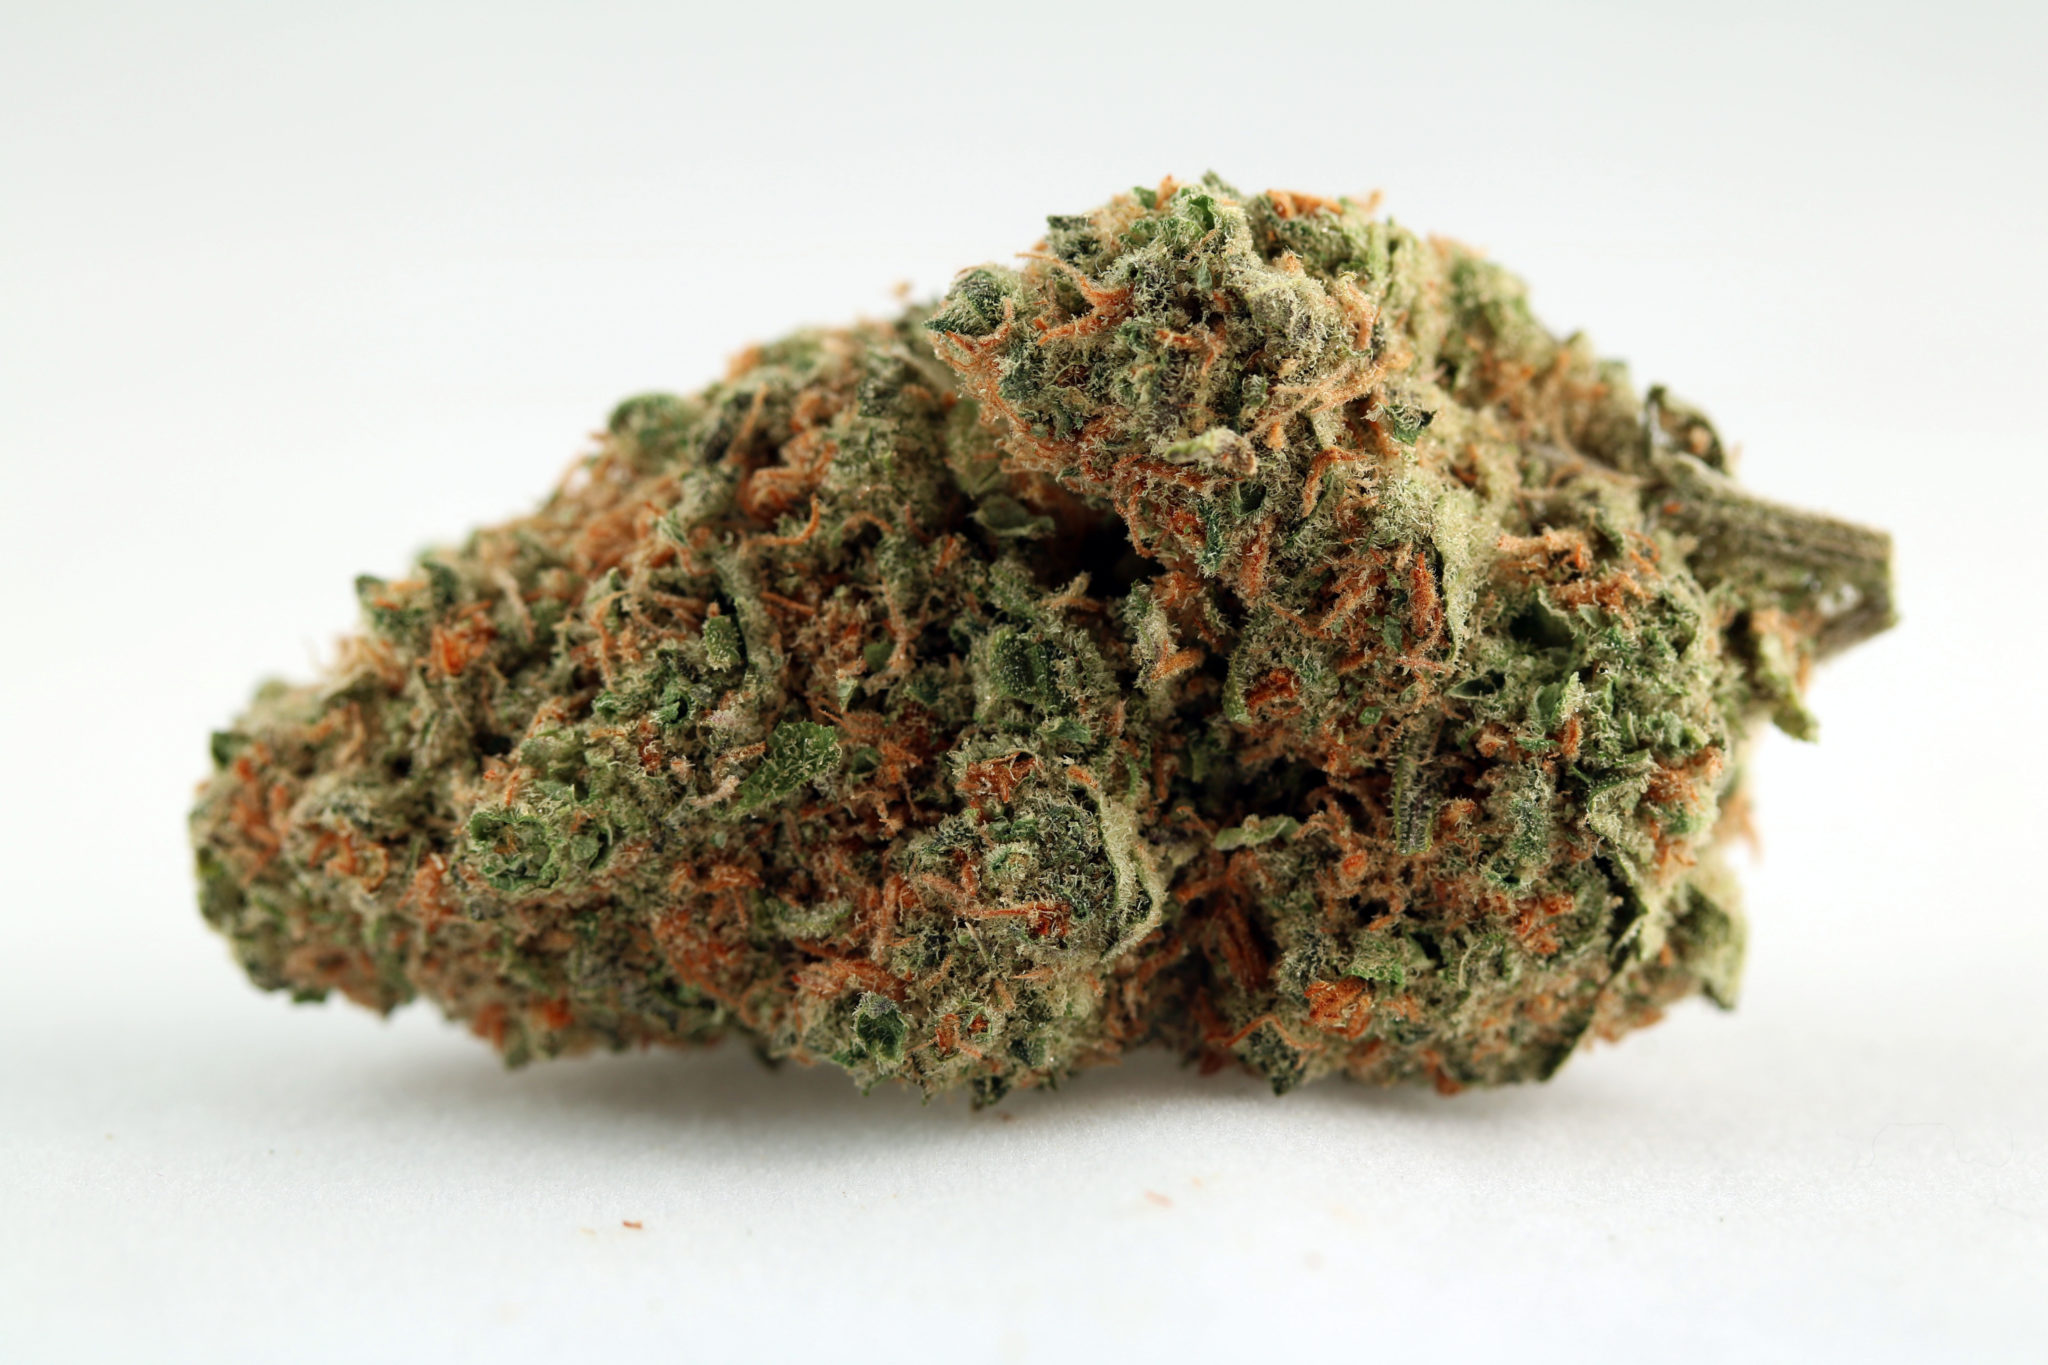 Skunk #1 Strain Review